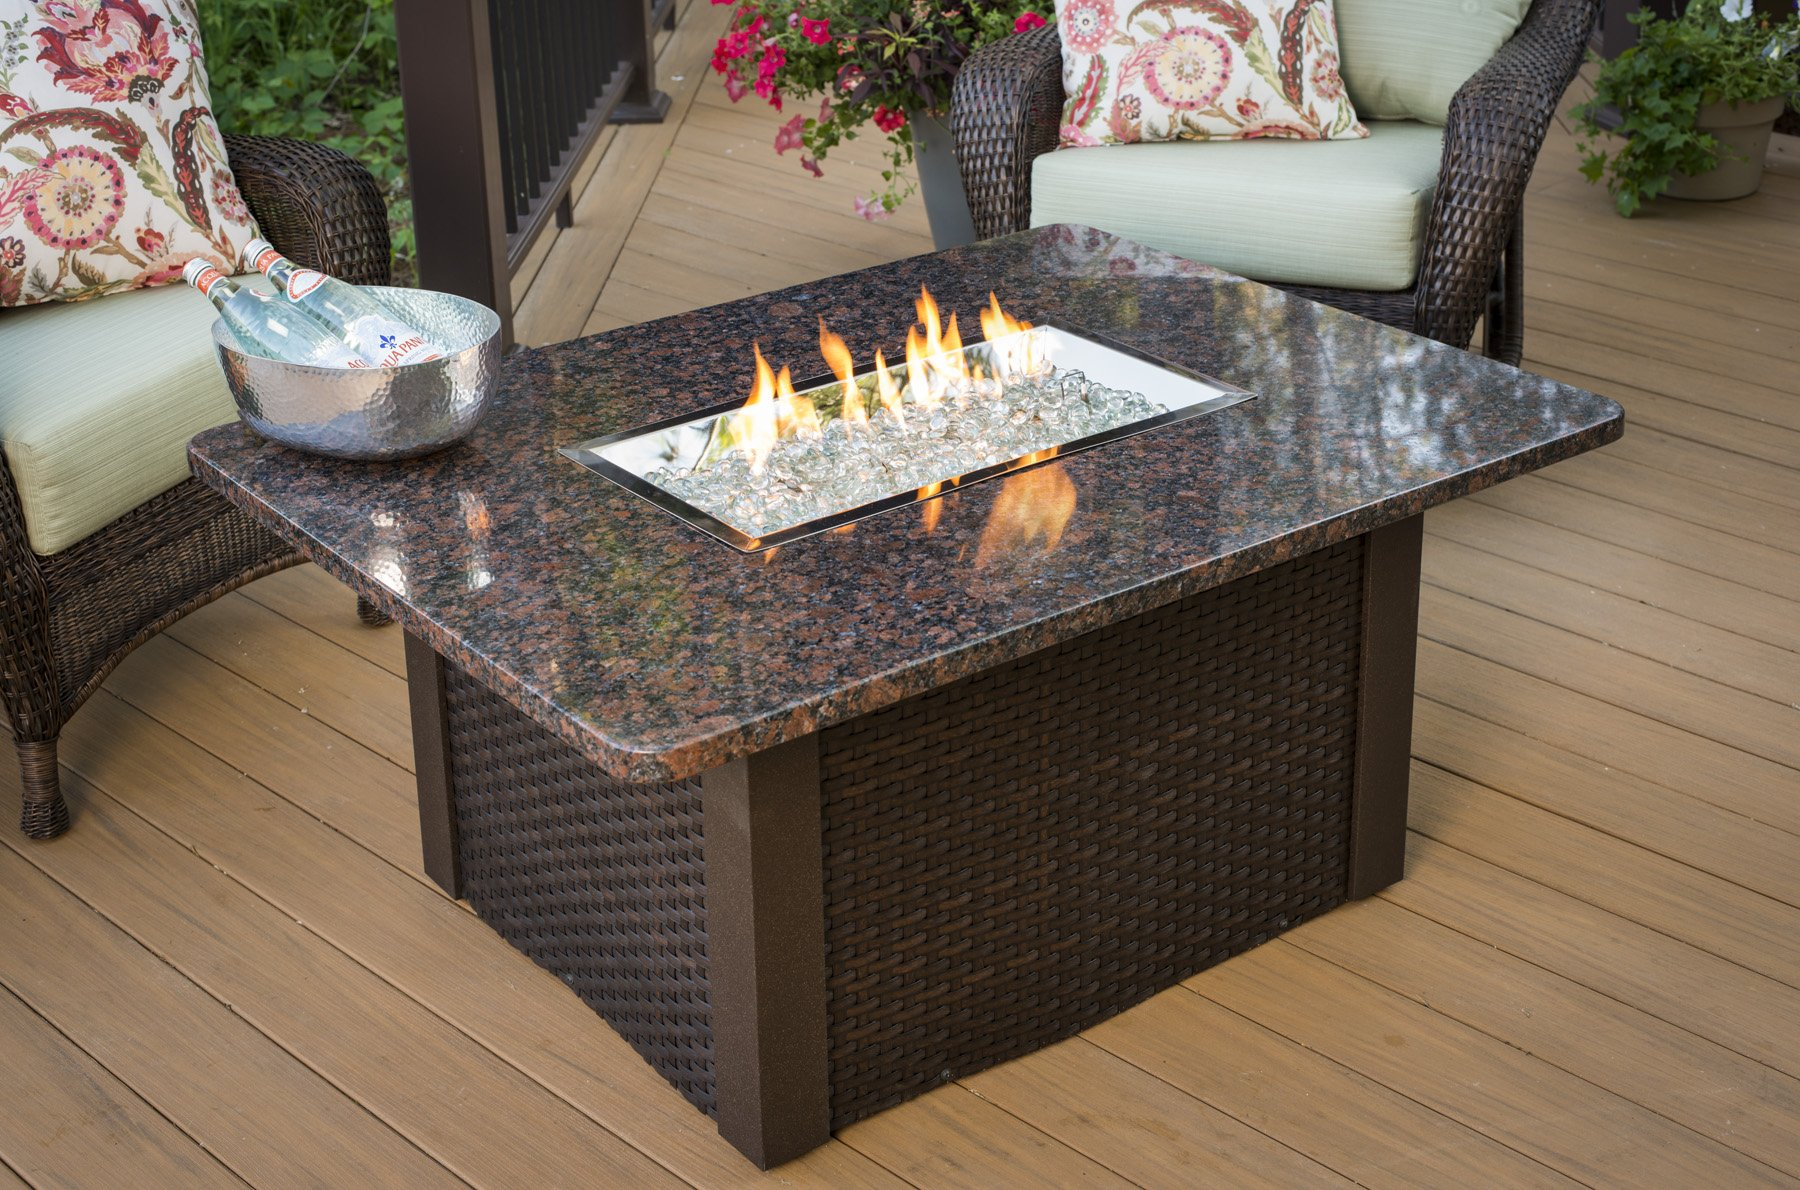 Grandstone, Granite, British Granite, table, dining table, promotion, sale, fire pit, firepit, fire table,  firetable, Outdoor Greatroom Company